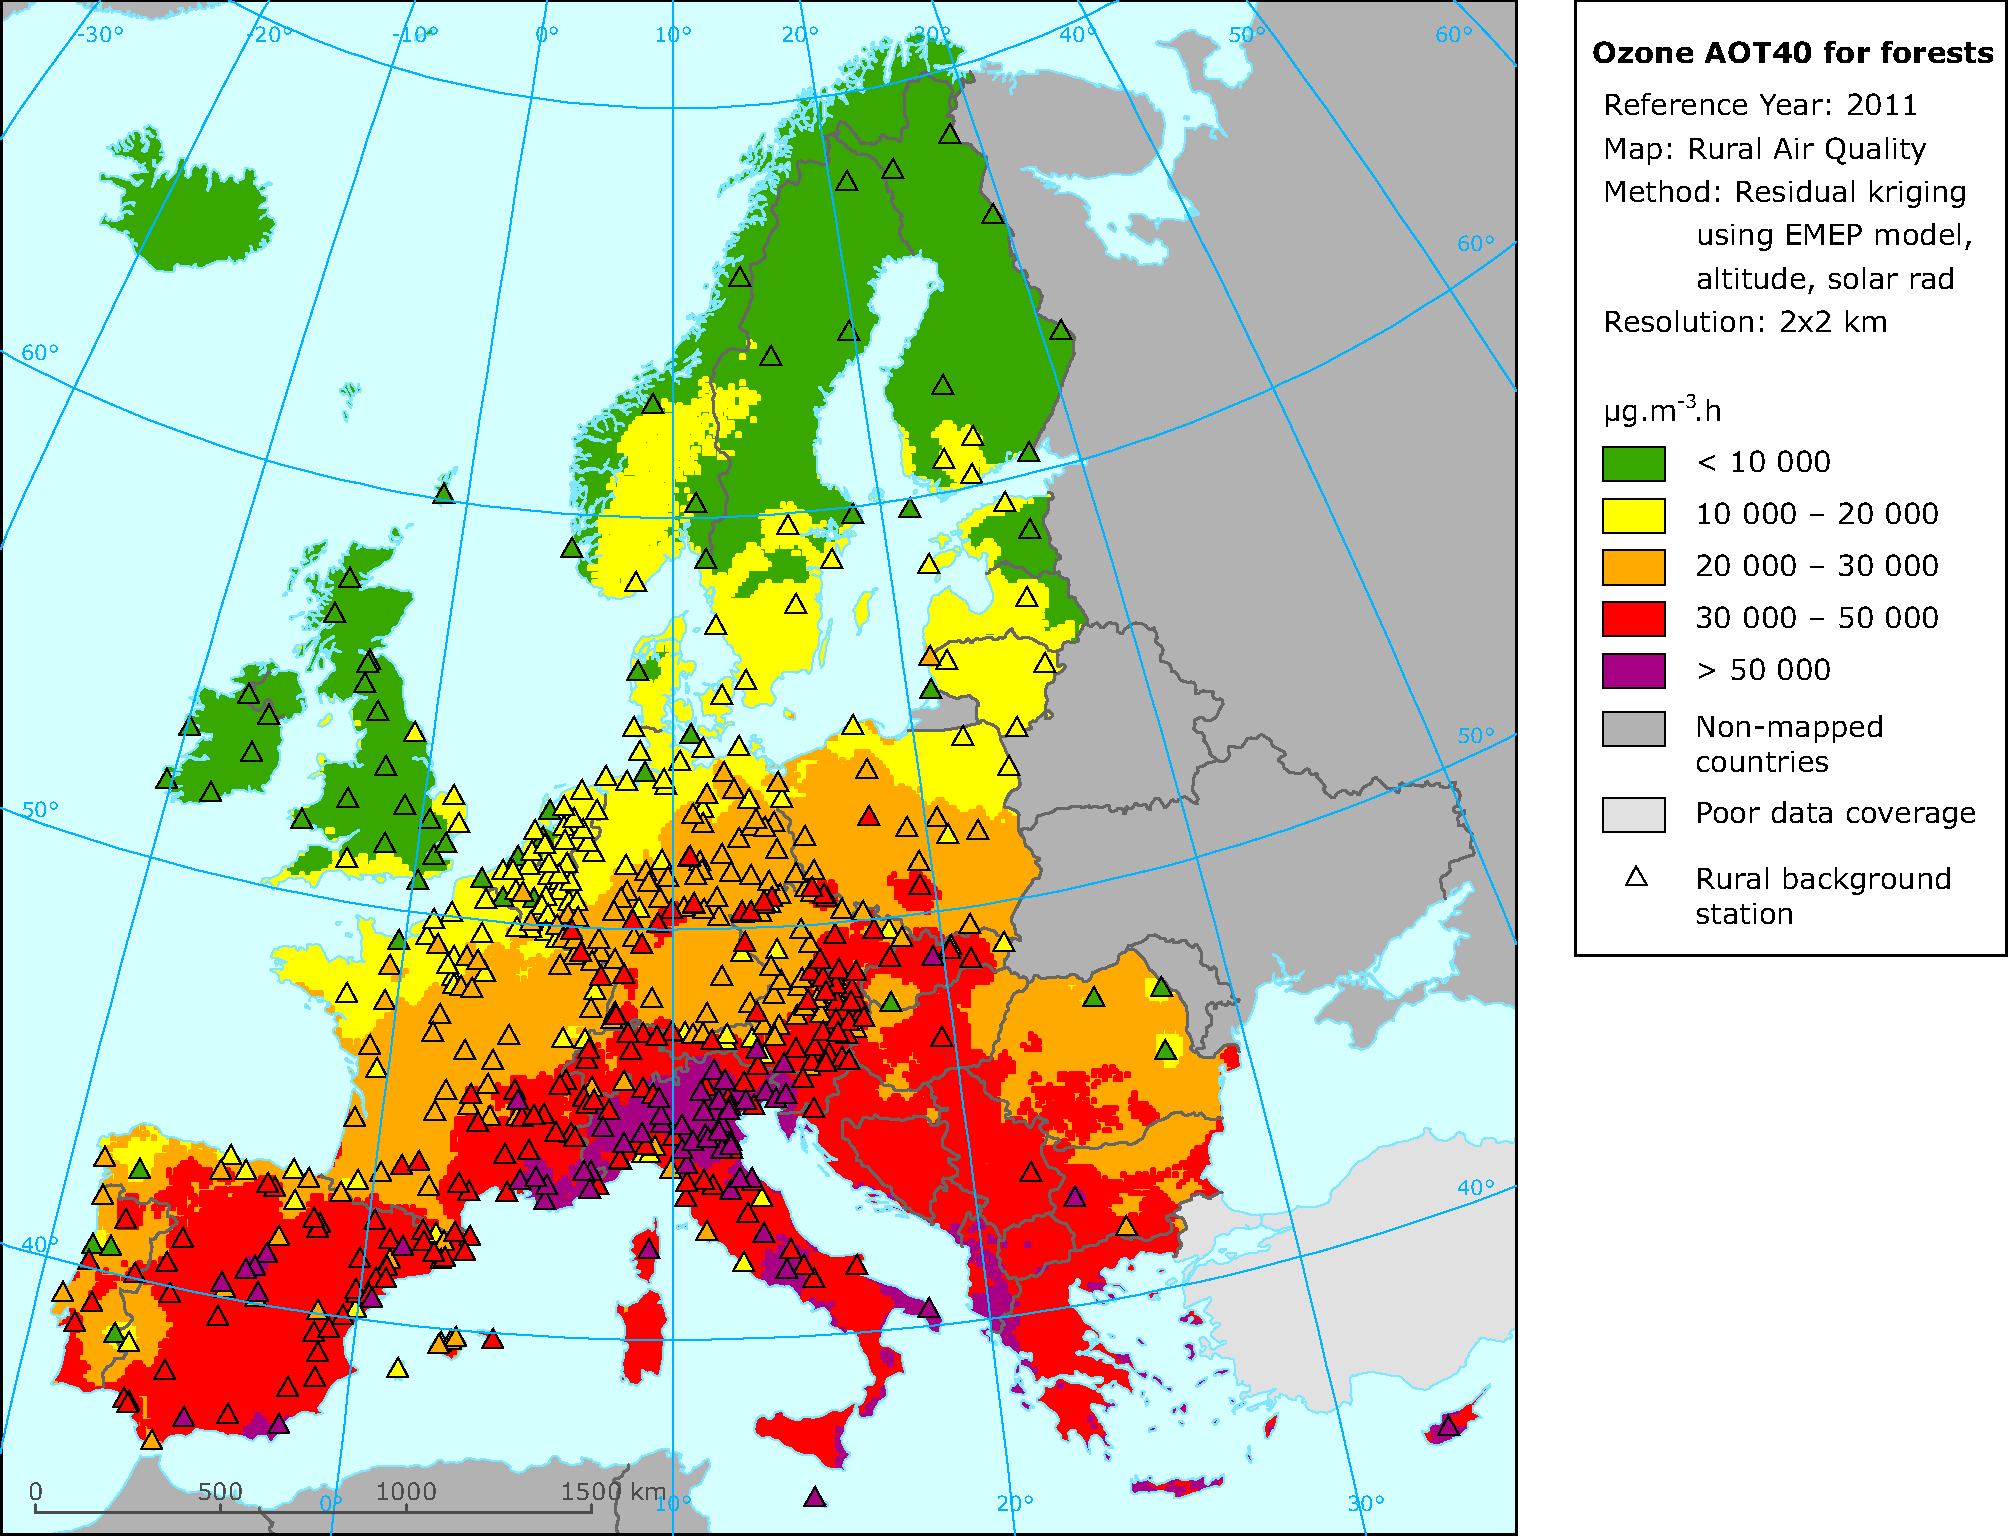 Rural concentration map of the ozone indicator AOT40 for forest in 2011